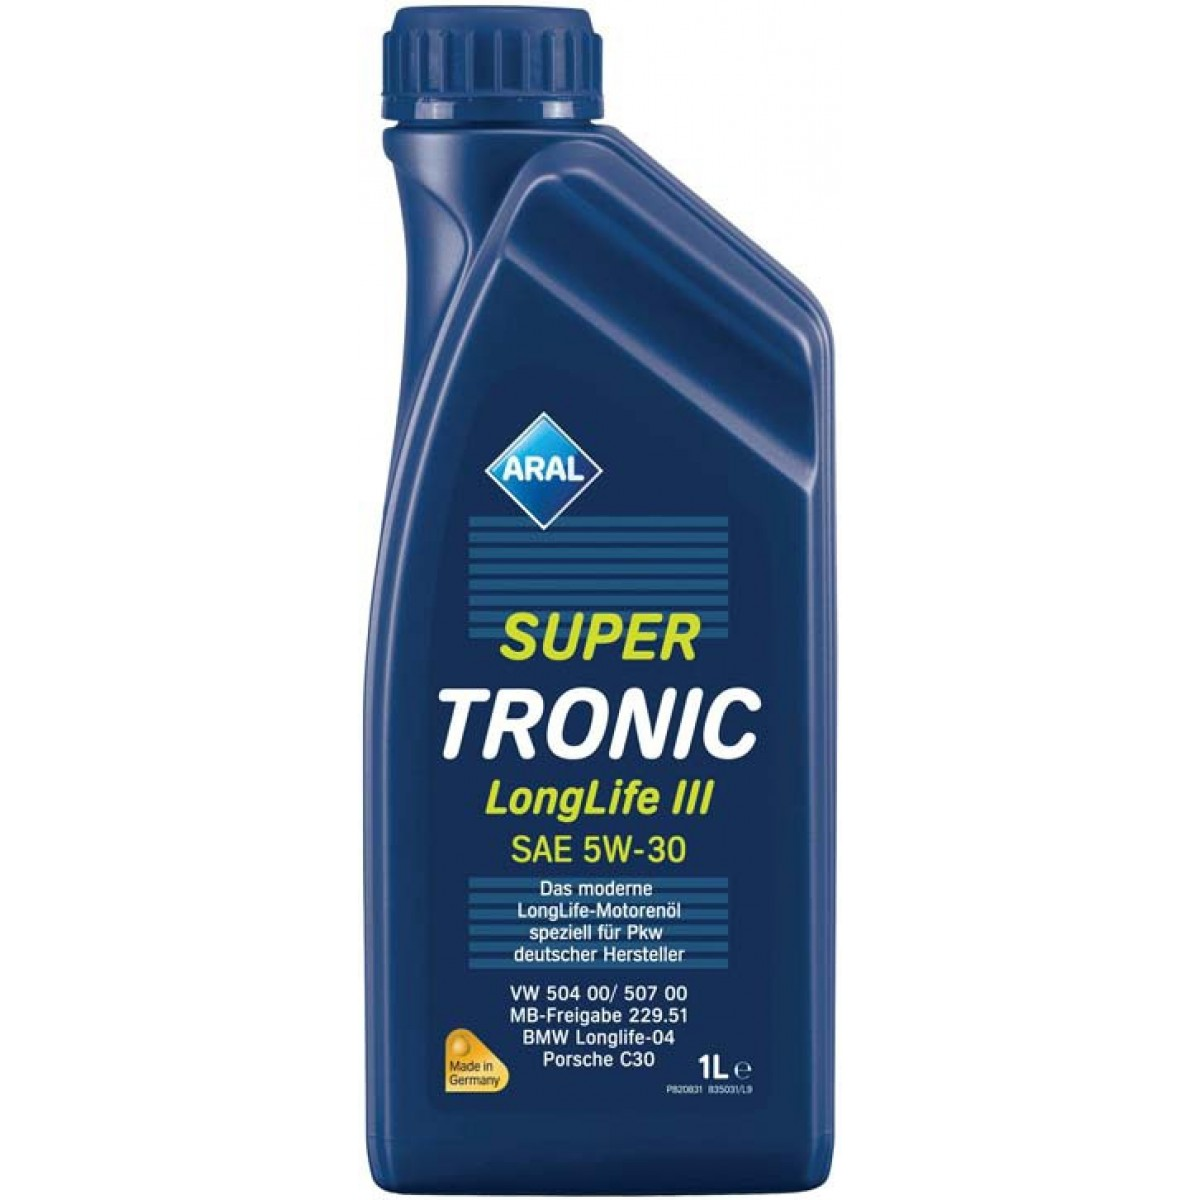 ARAL Масло мот. Super Tronic 5w30 LongLife lll 1л.